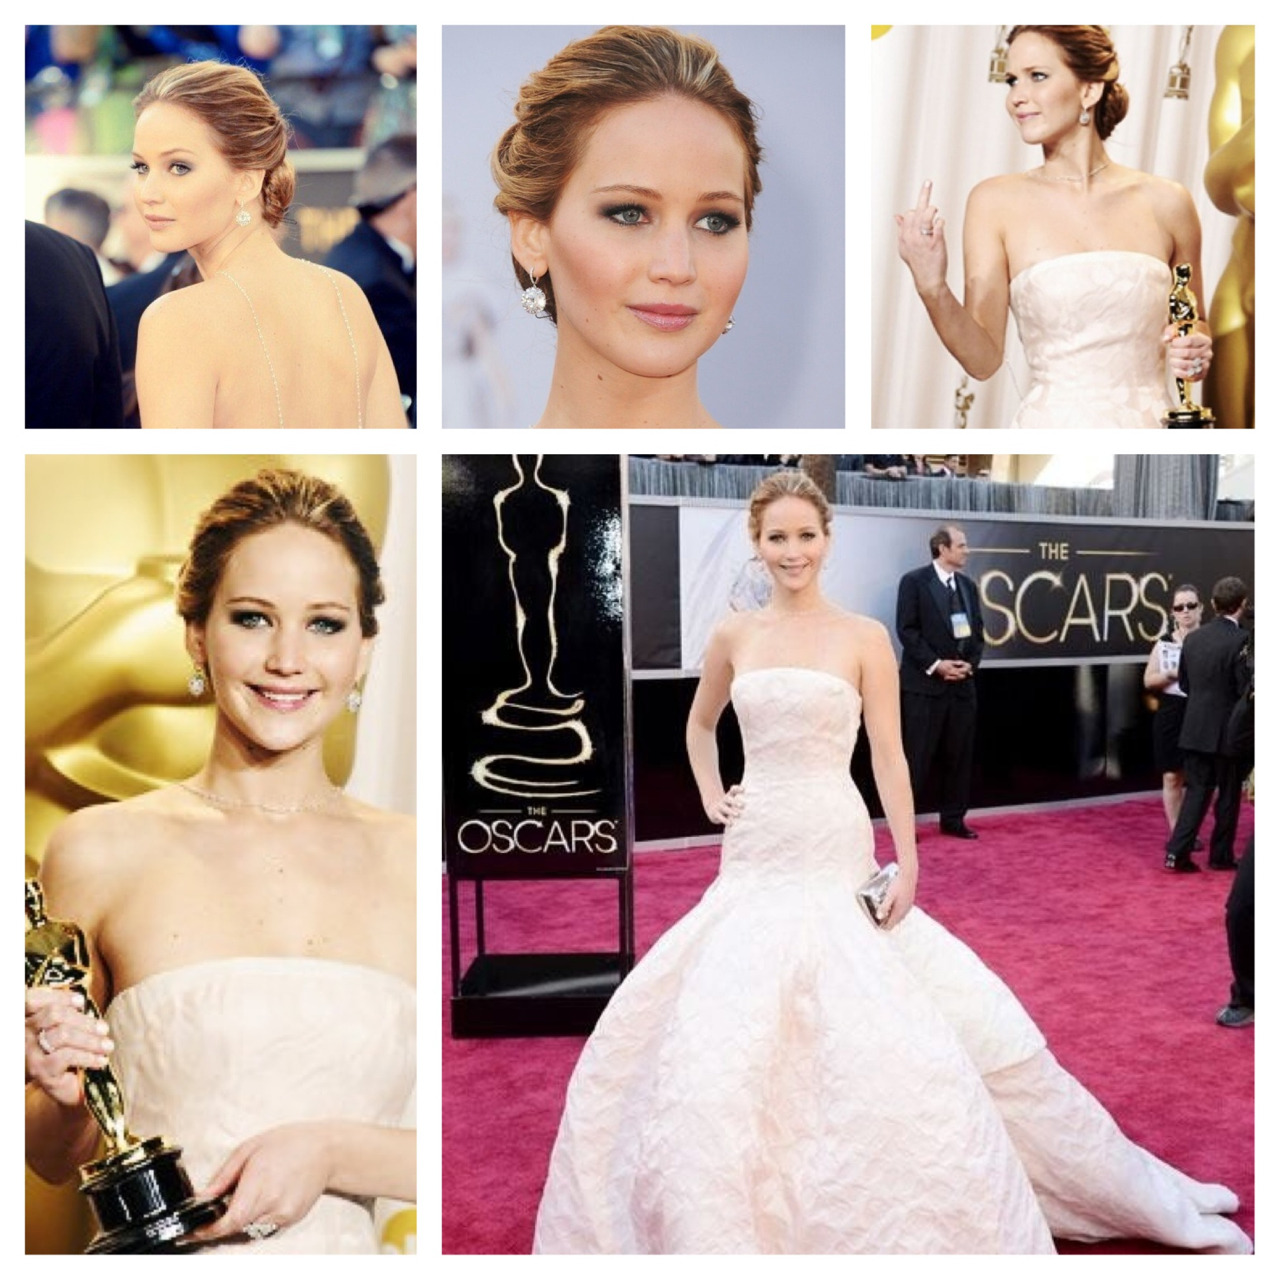 #jenedit #fab #idol #oscarwinner Jennifer Lawrence